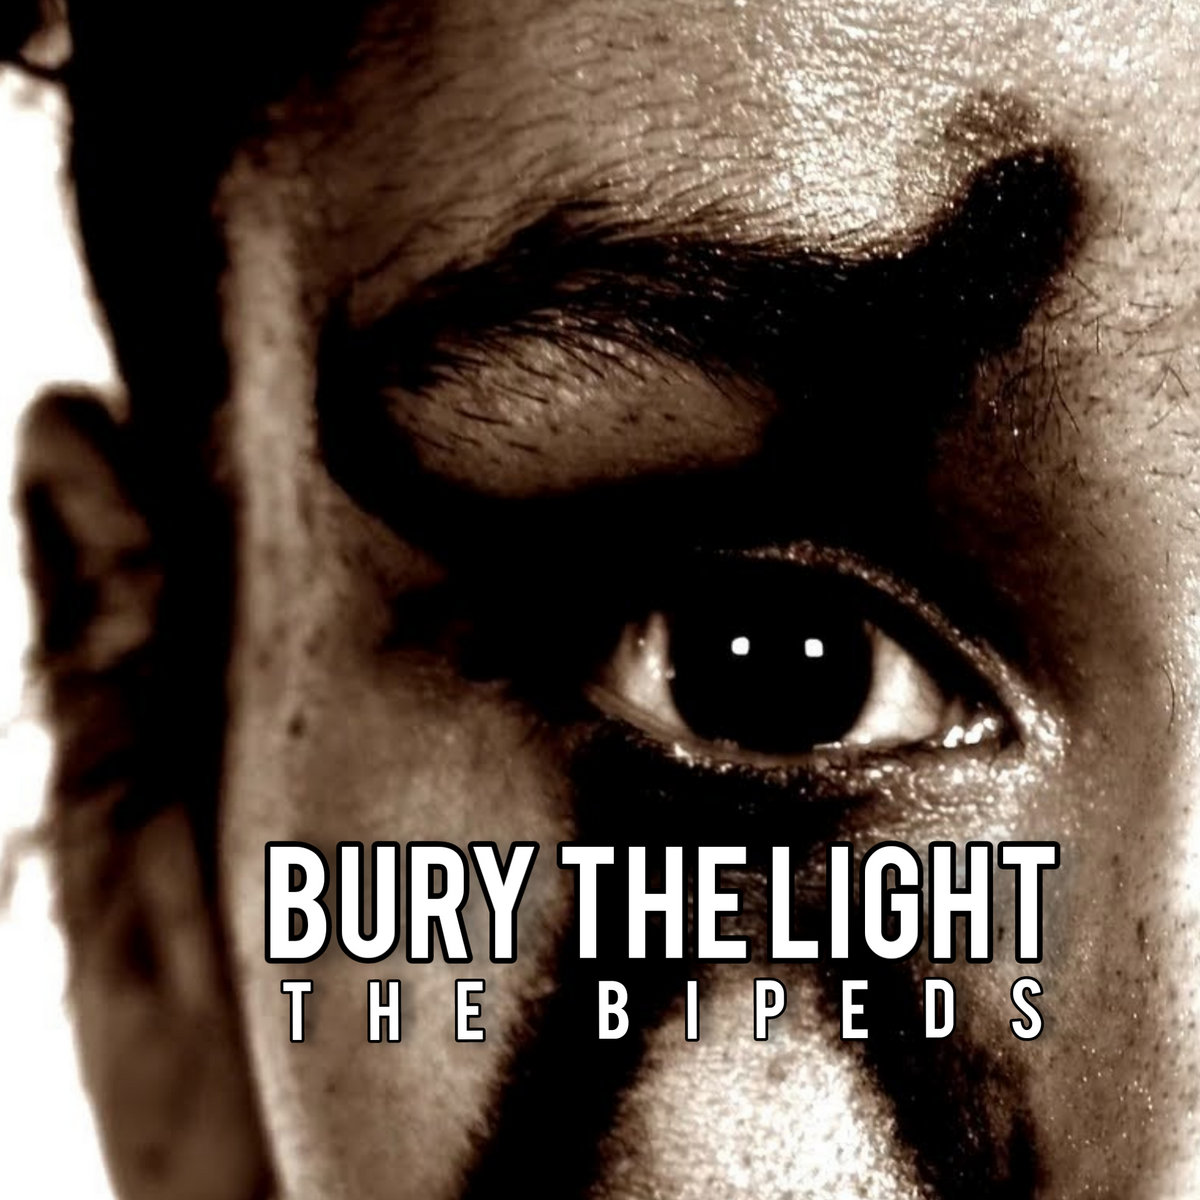 Bury the Light: a new film by The Bipeds